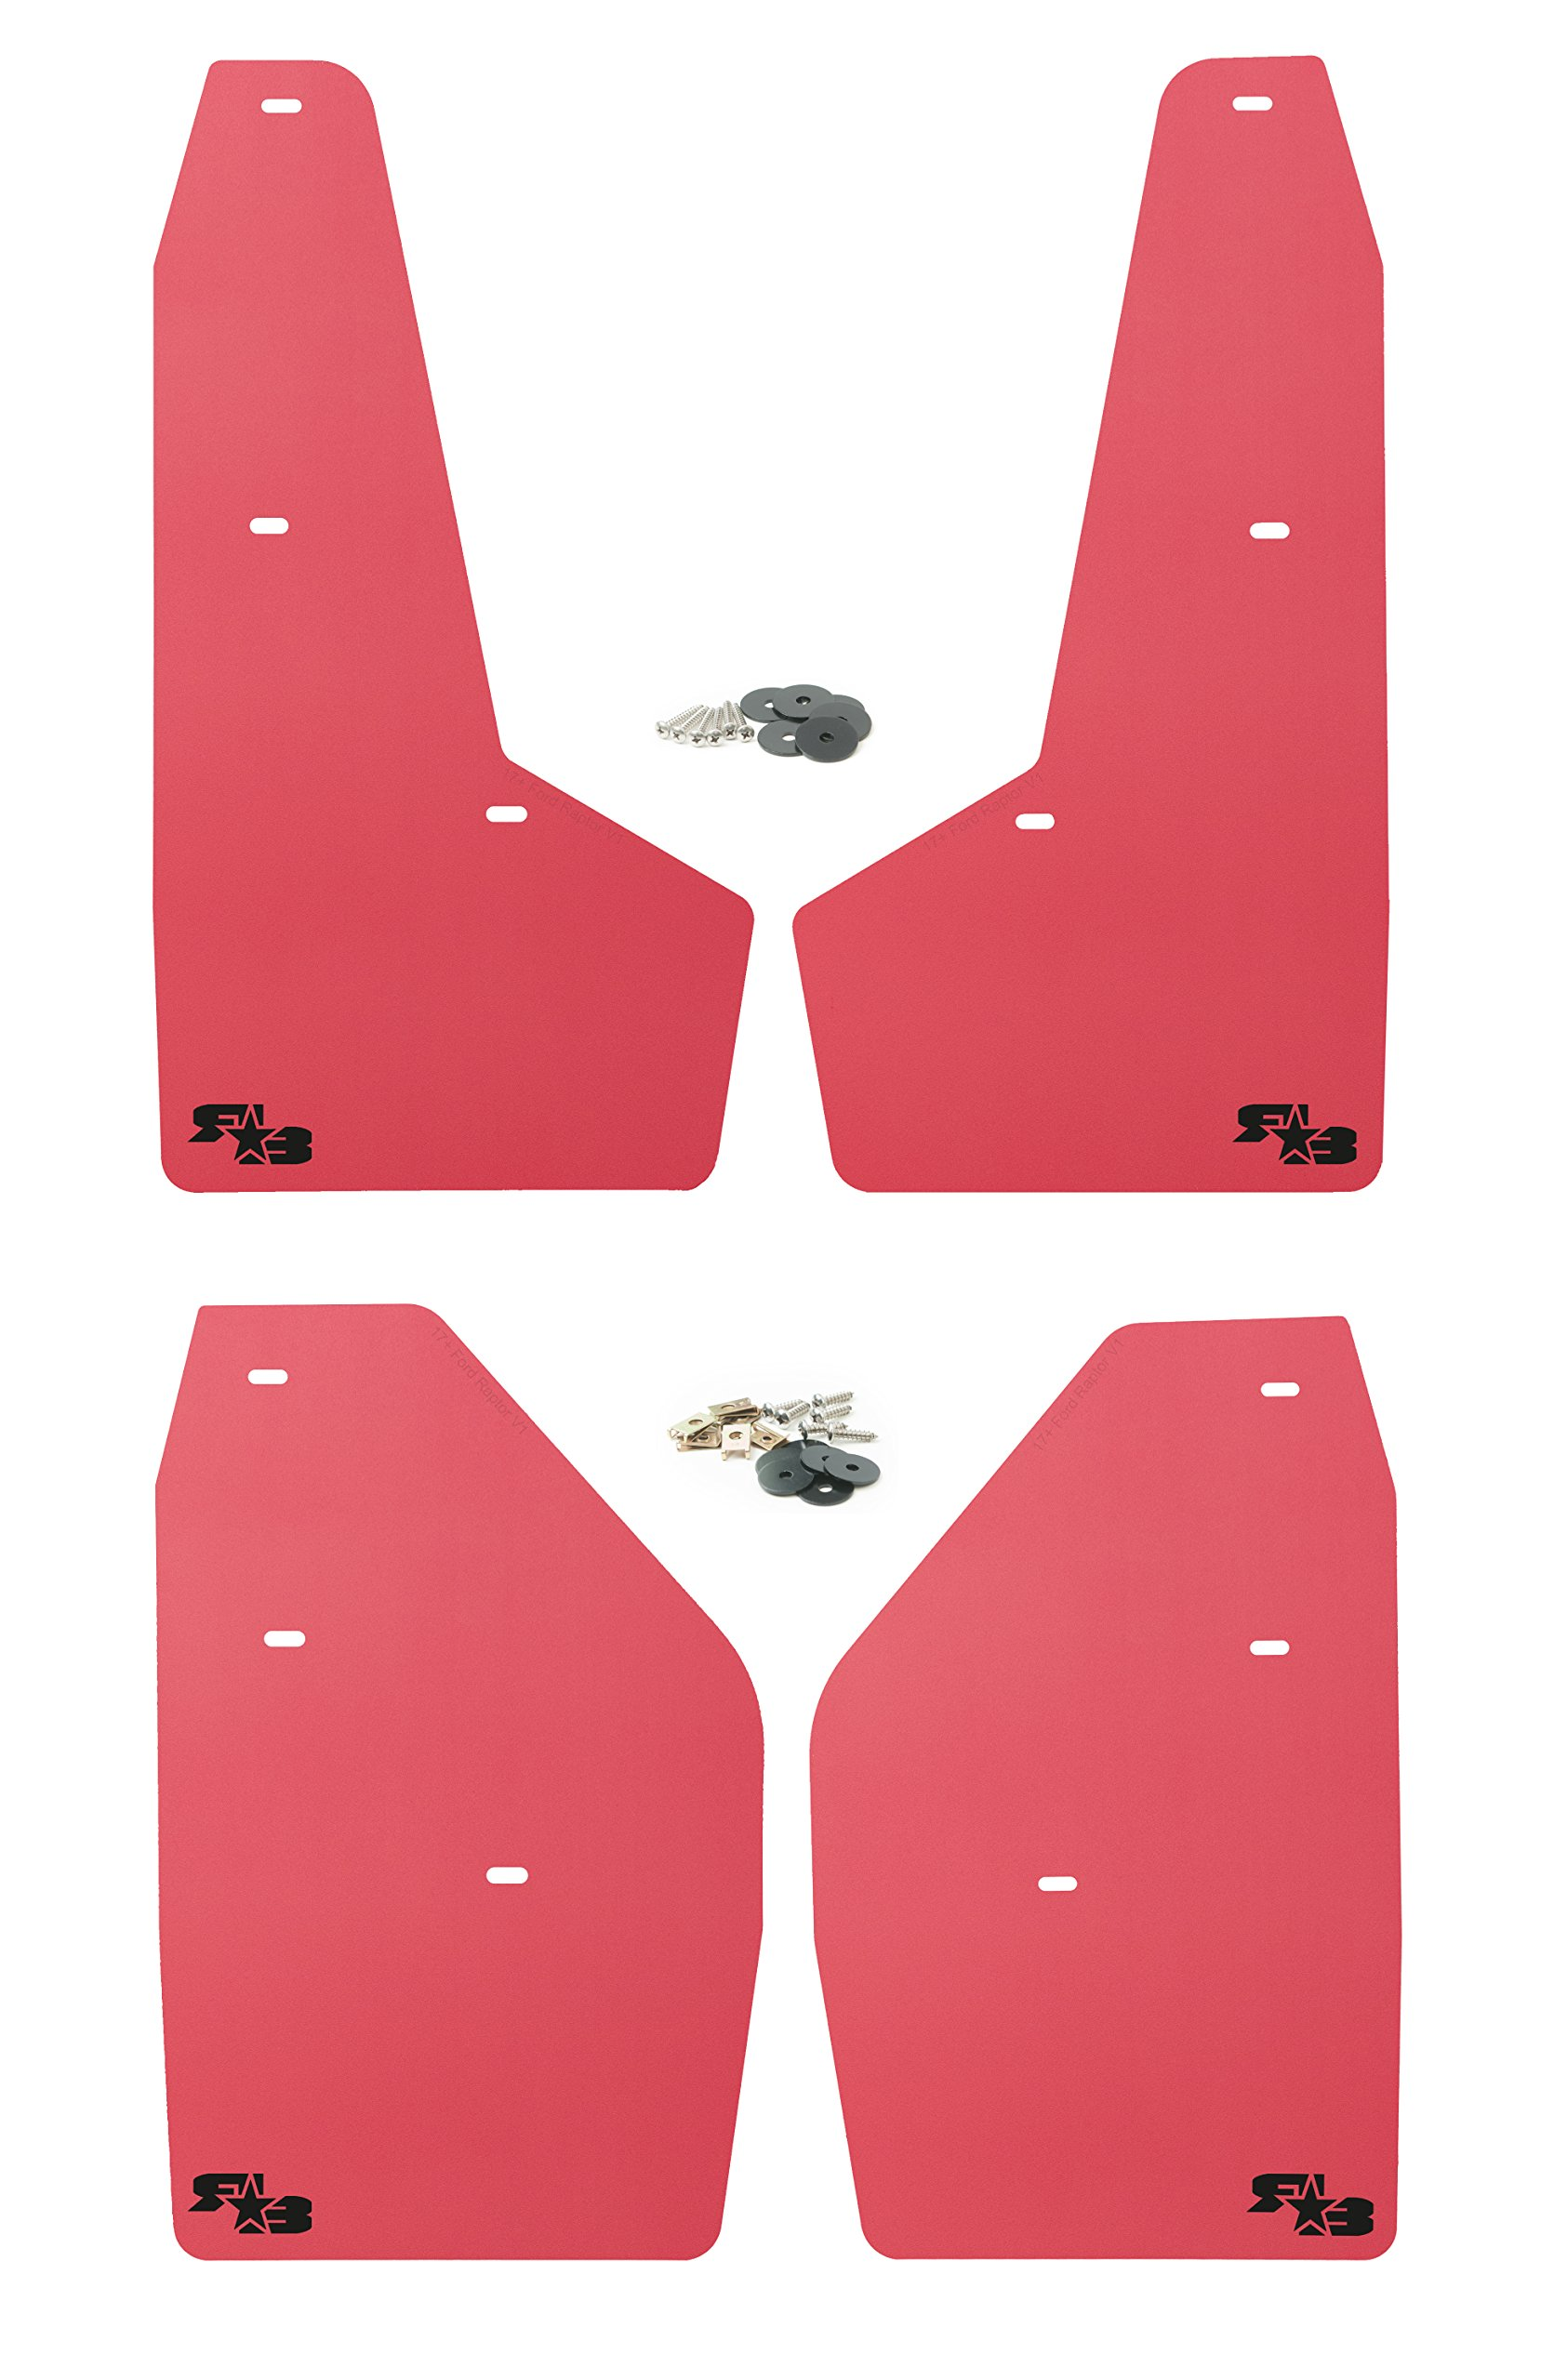 RokBlokz Mud Flaps for 2017+ Ford Raptor - Set of 4 - Multiple Colors Available - Includes All Mounting Hardware (Red with Black Logo)